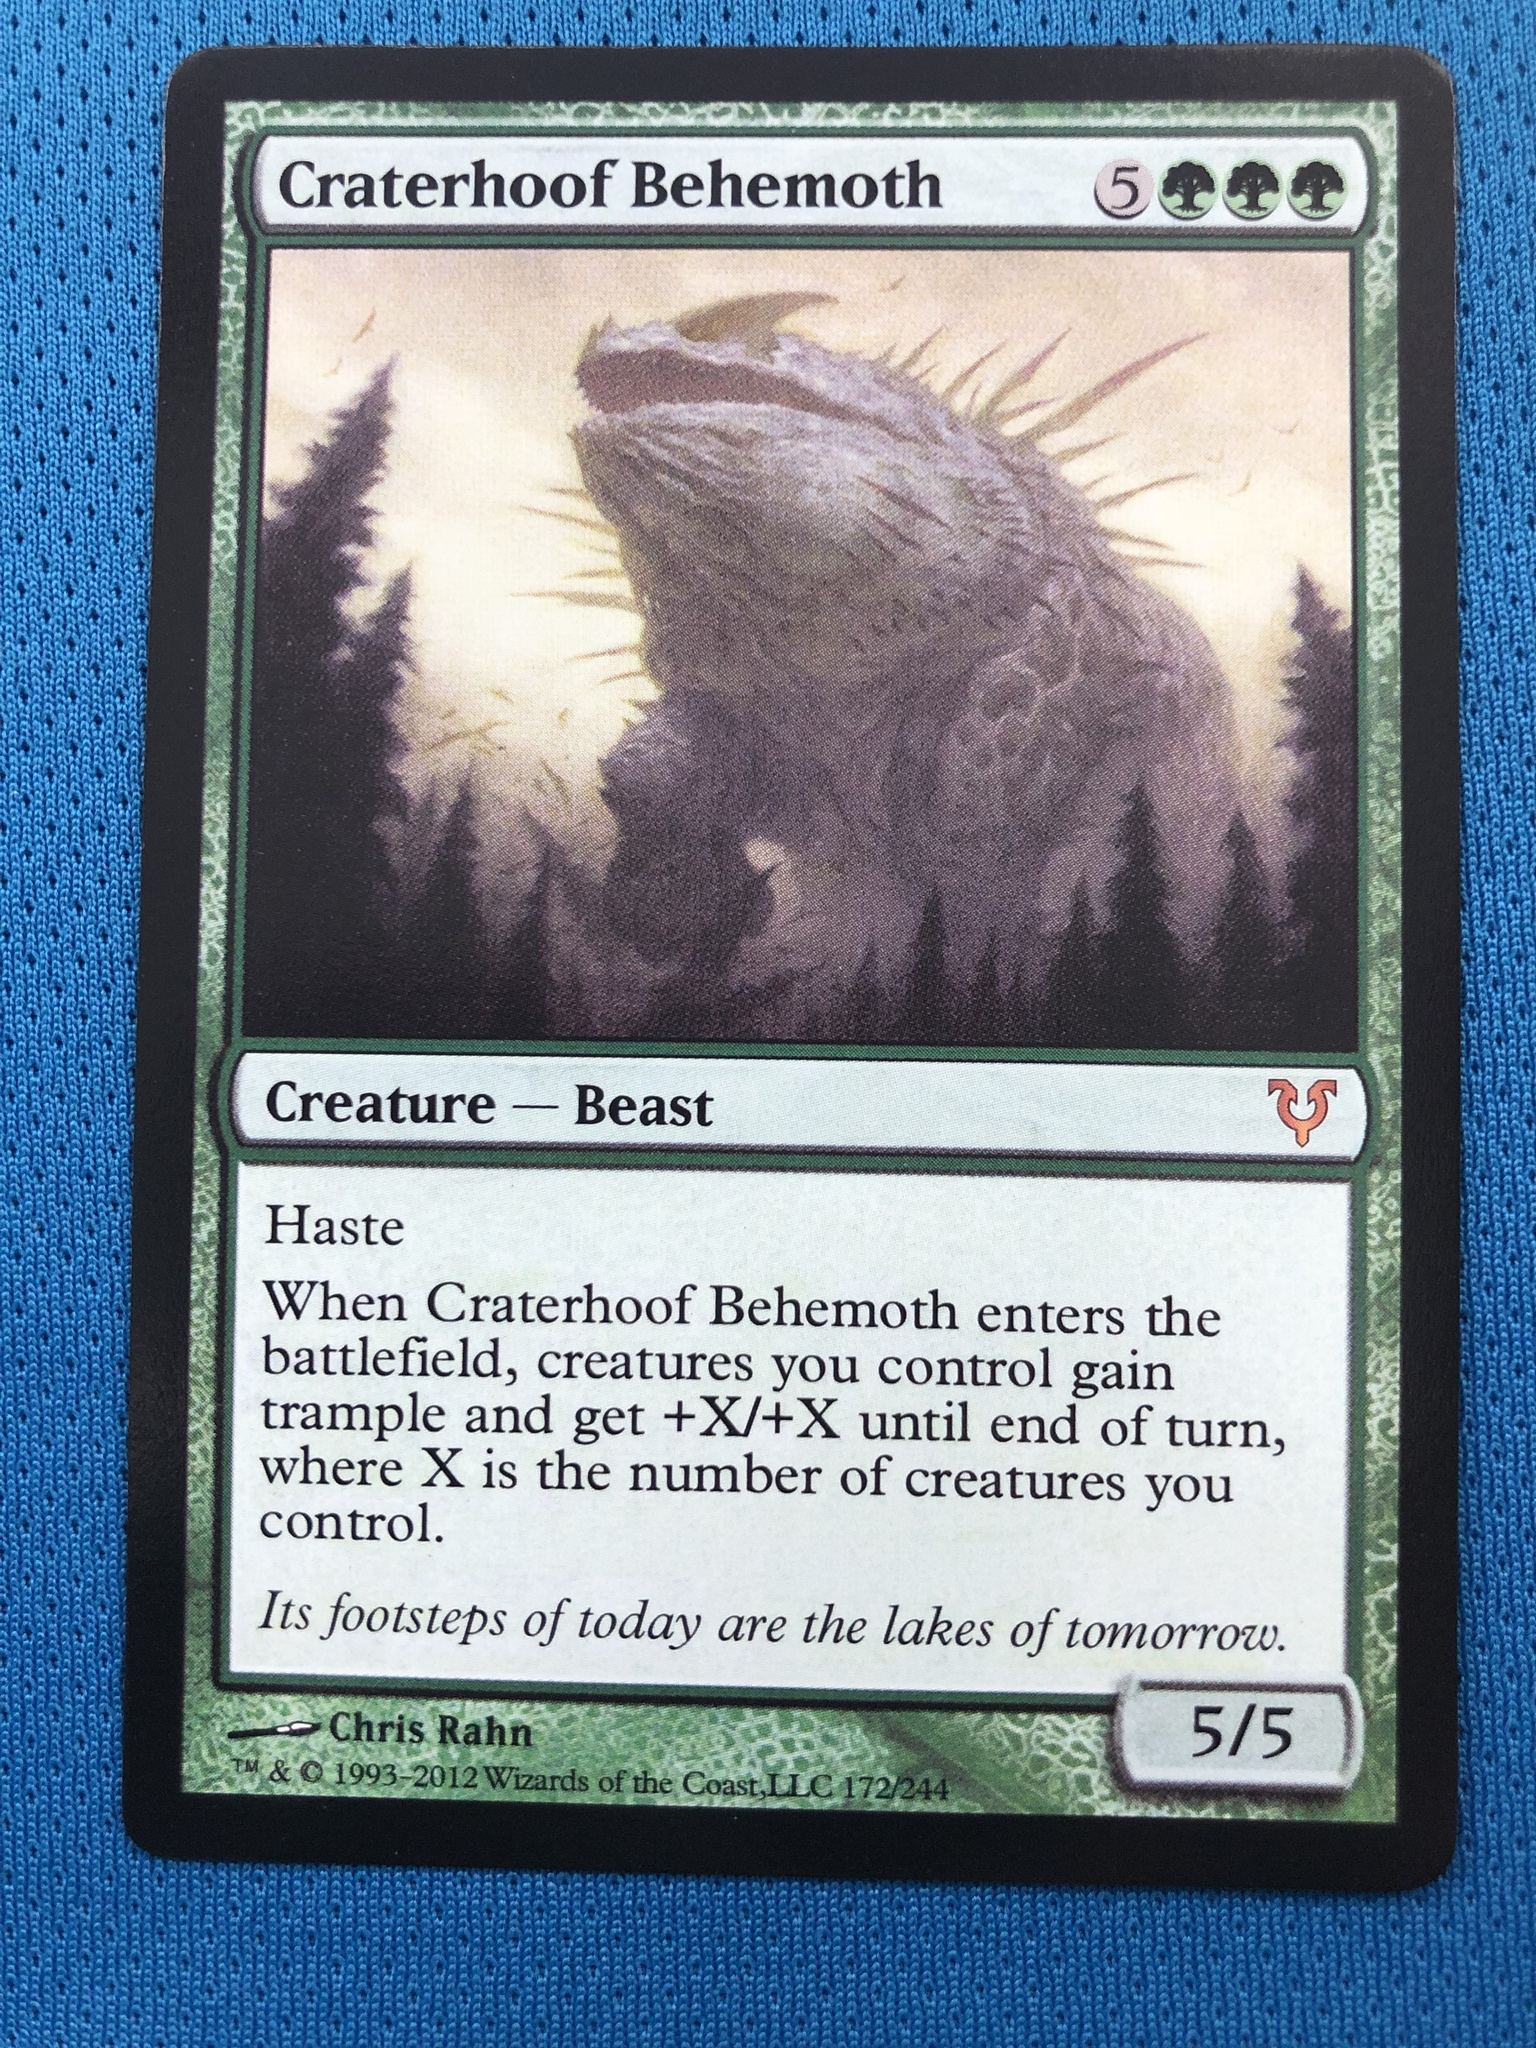 Craterhoof Behemoth	Avacyn Restored Magician ProxyKing 8.0 VIP The Proxy Cards To Gathering Every Single Mg Card.